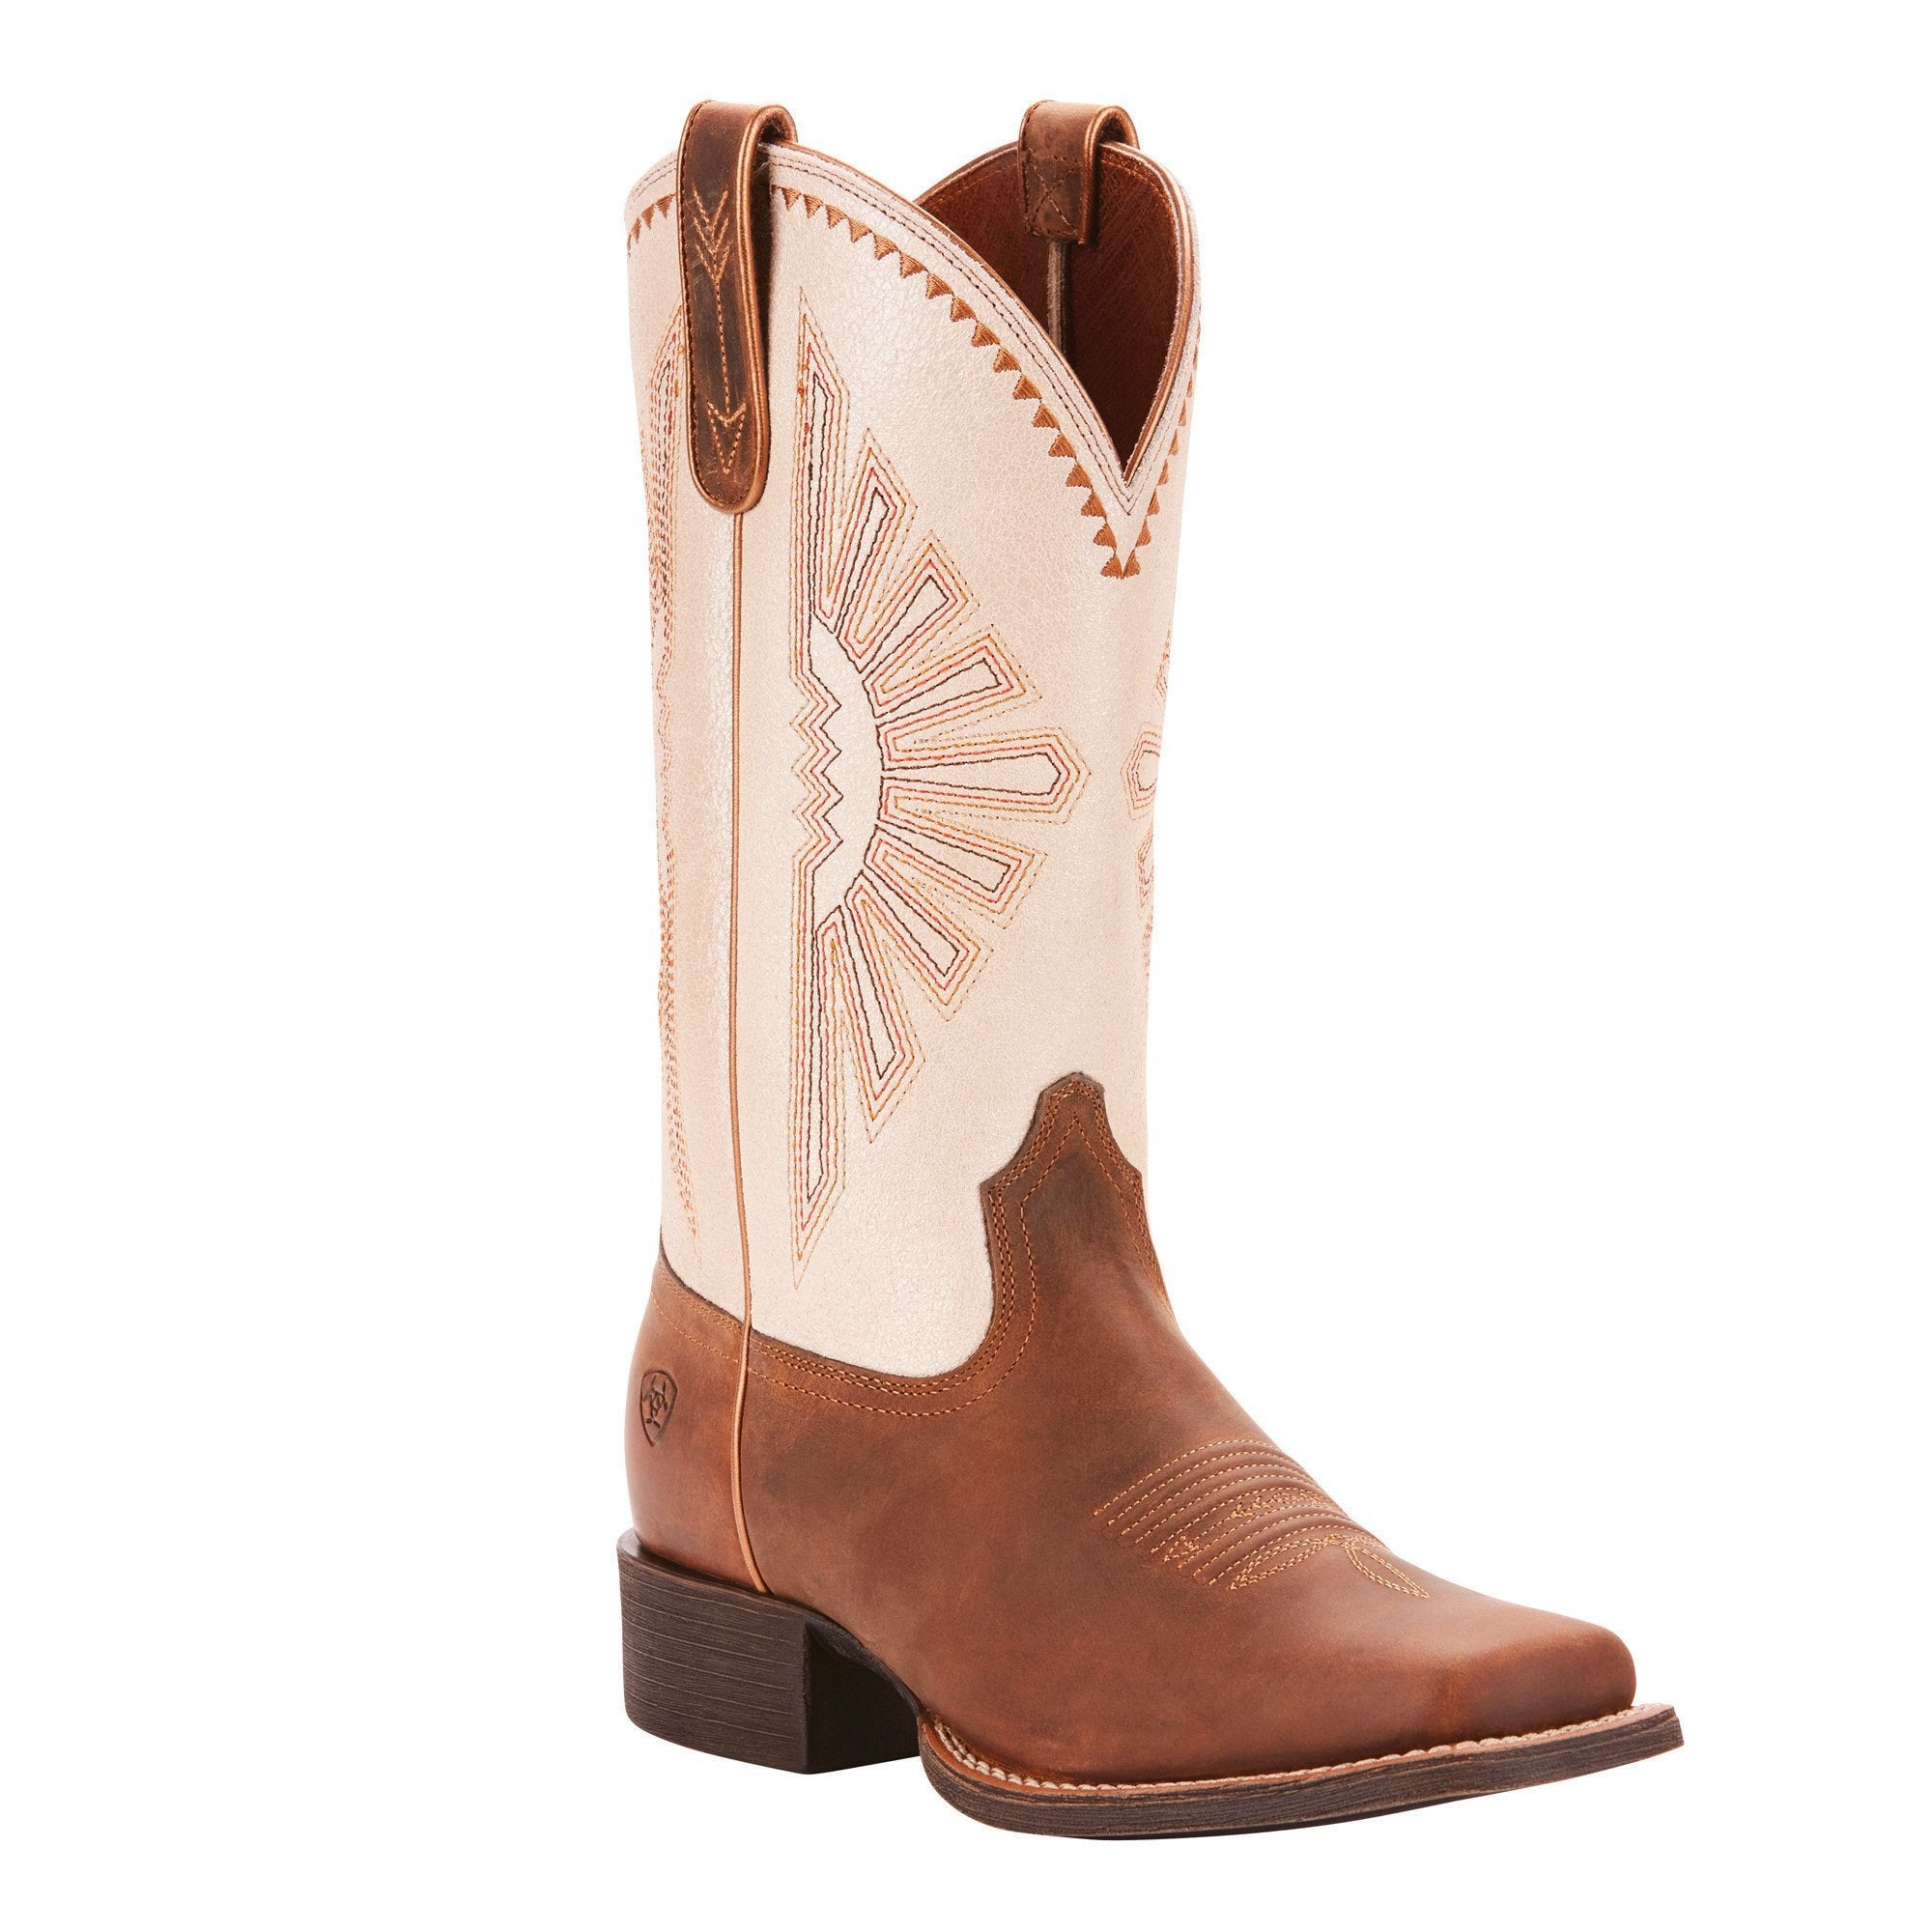 50eb7302aed Women's Ariat Round Up Rio Boot Distressed Brown #10025036 – Allens ...